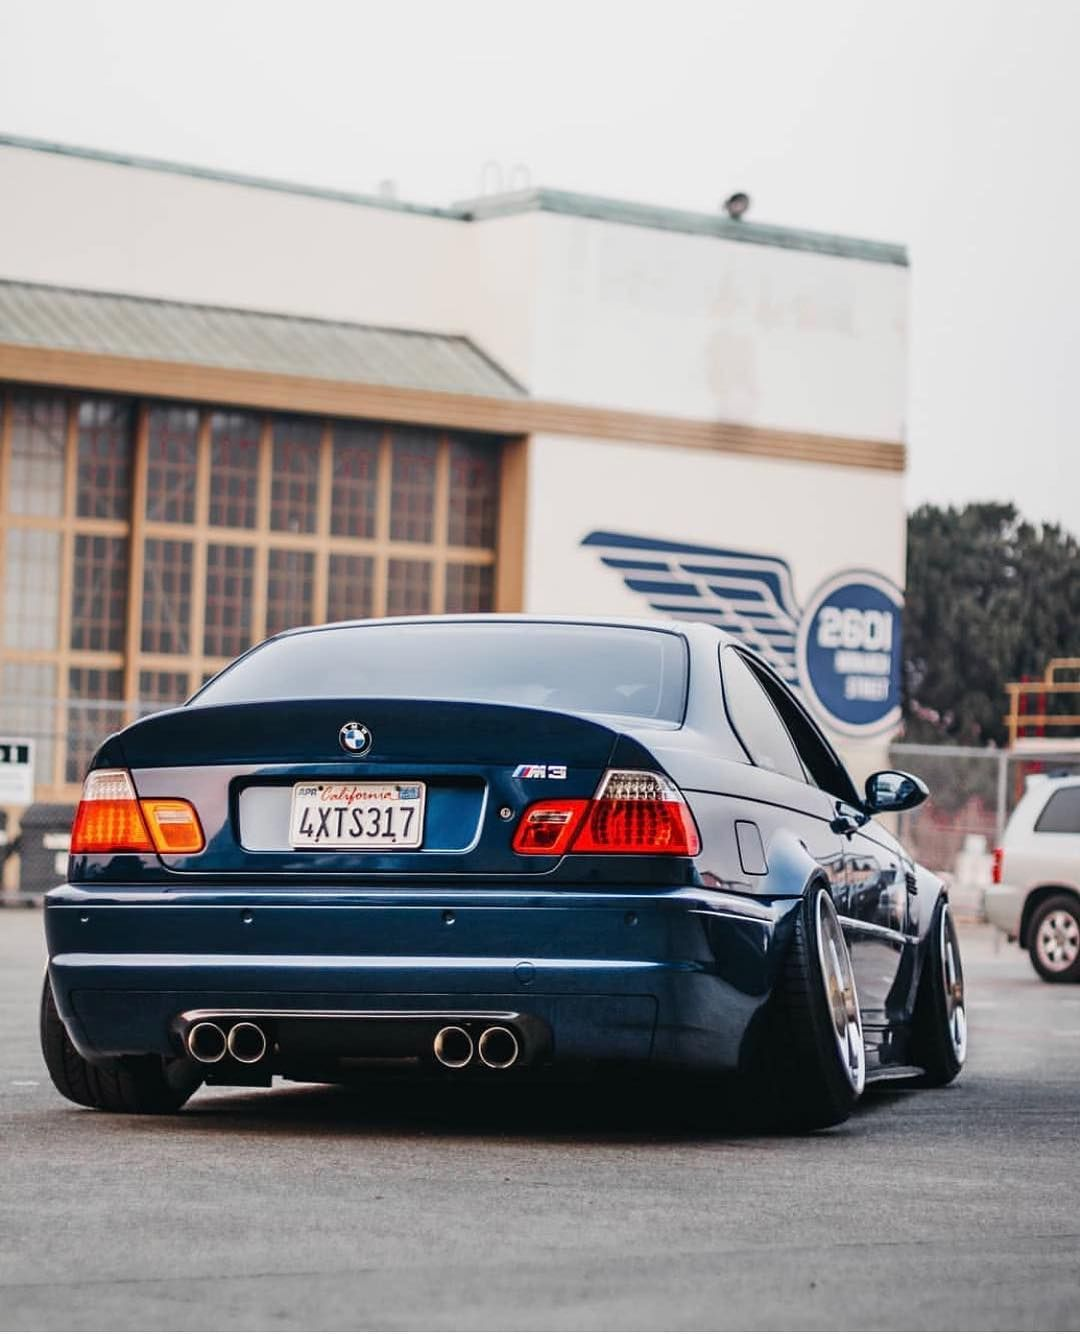 Bmw E46 M3 Blue Stance With Images Bmw Bmw E46 E46 Touring